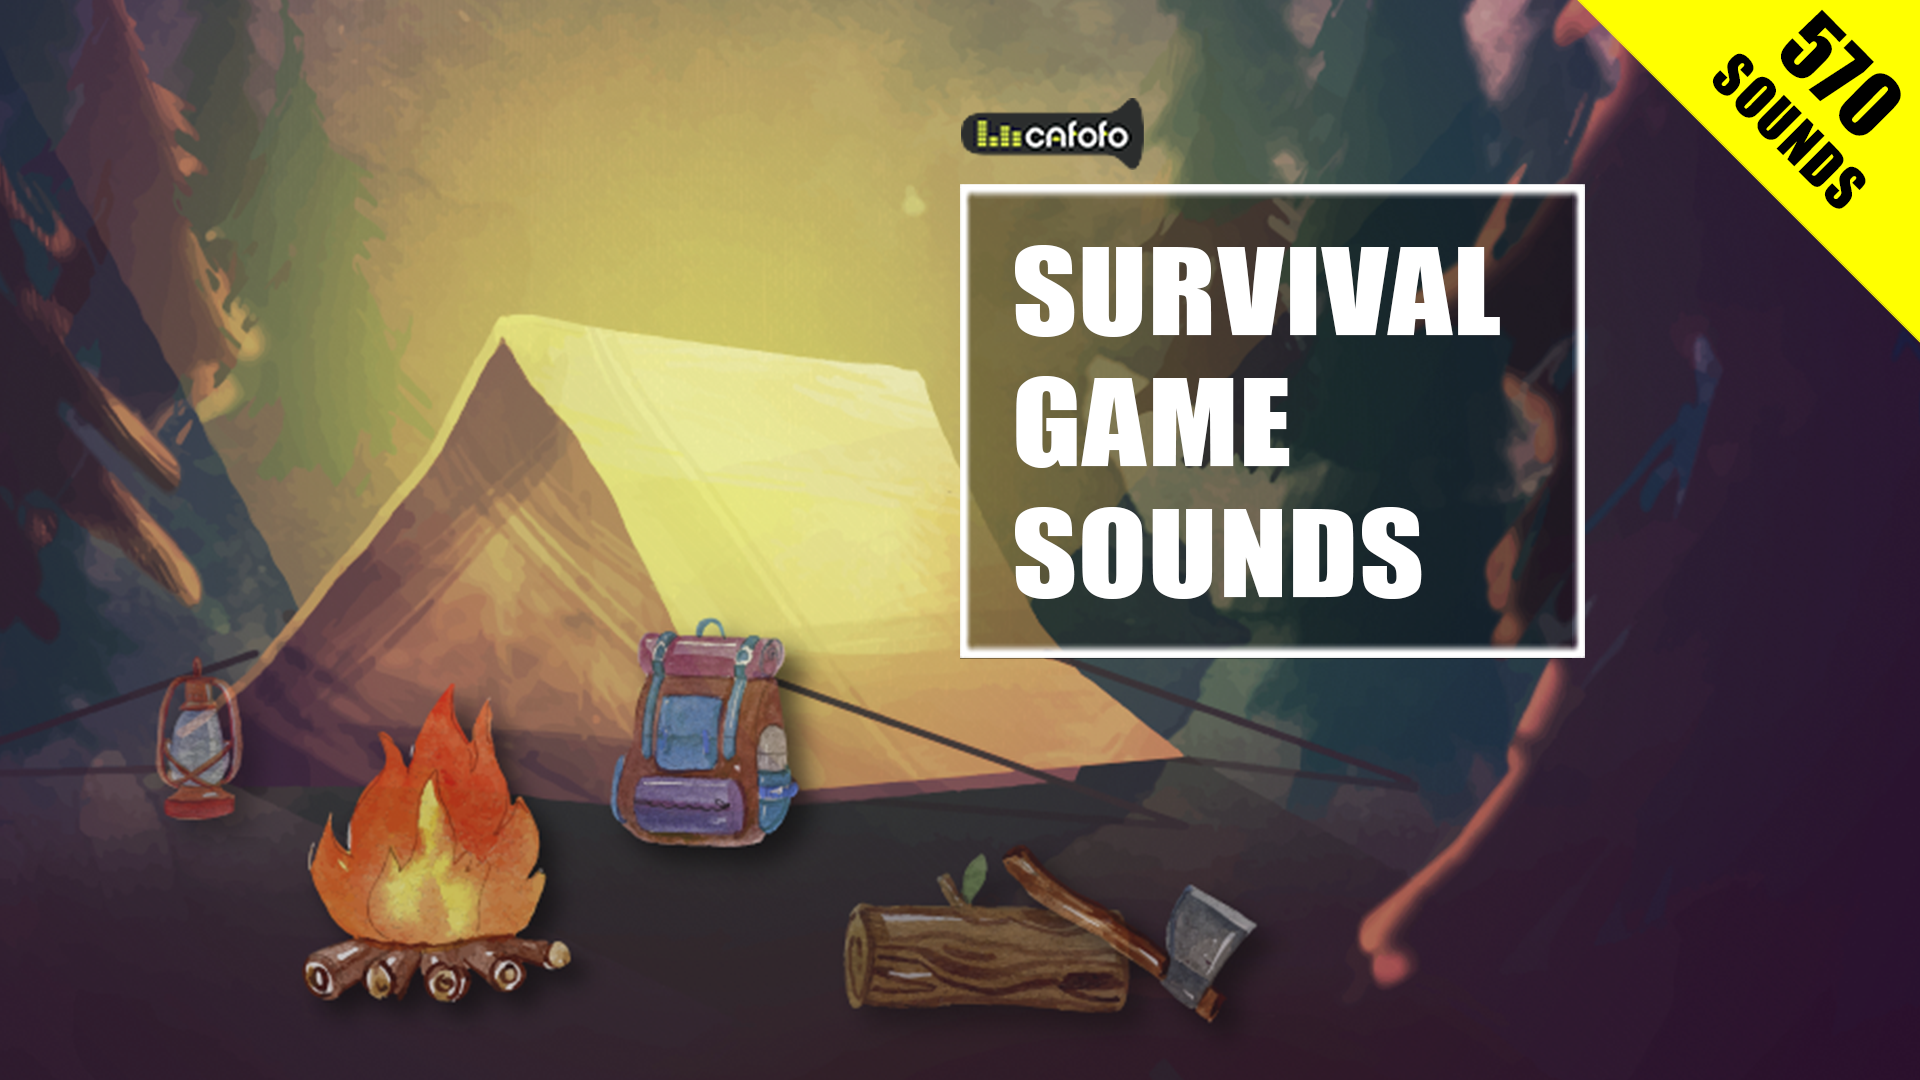 Survival Game Sounds by Cafofo Music in Sound Effects - UE4 Marketplace